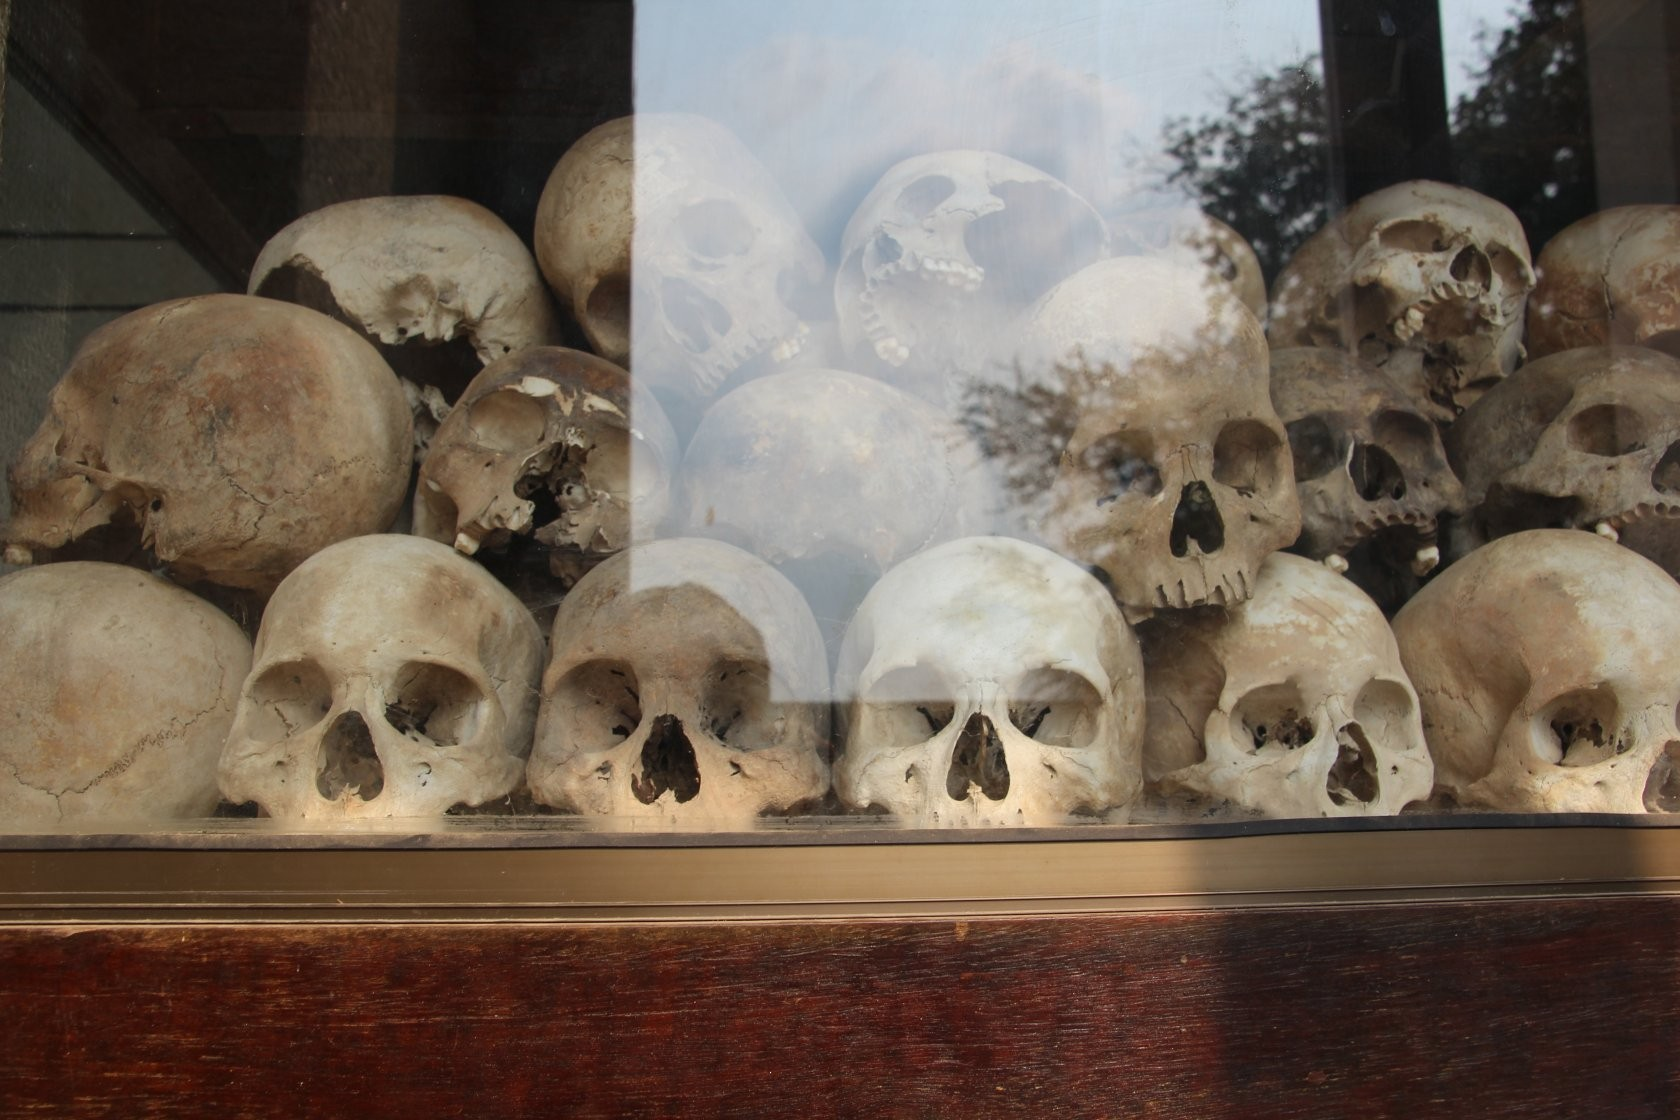 Phnom Penh - Killing Fields in Choeung Ek I